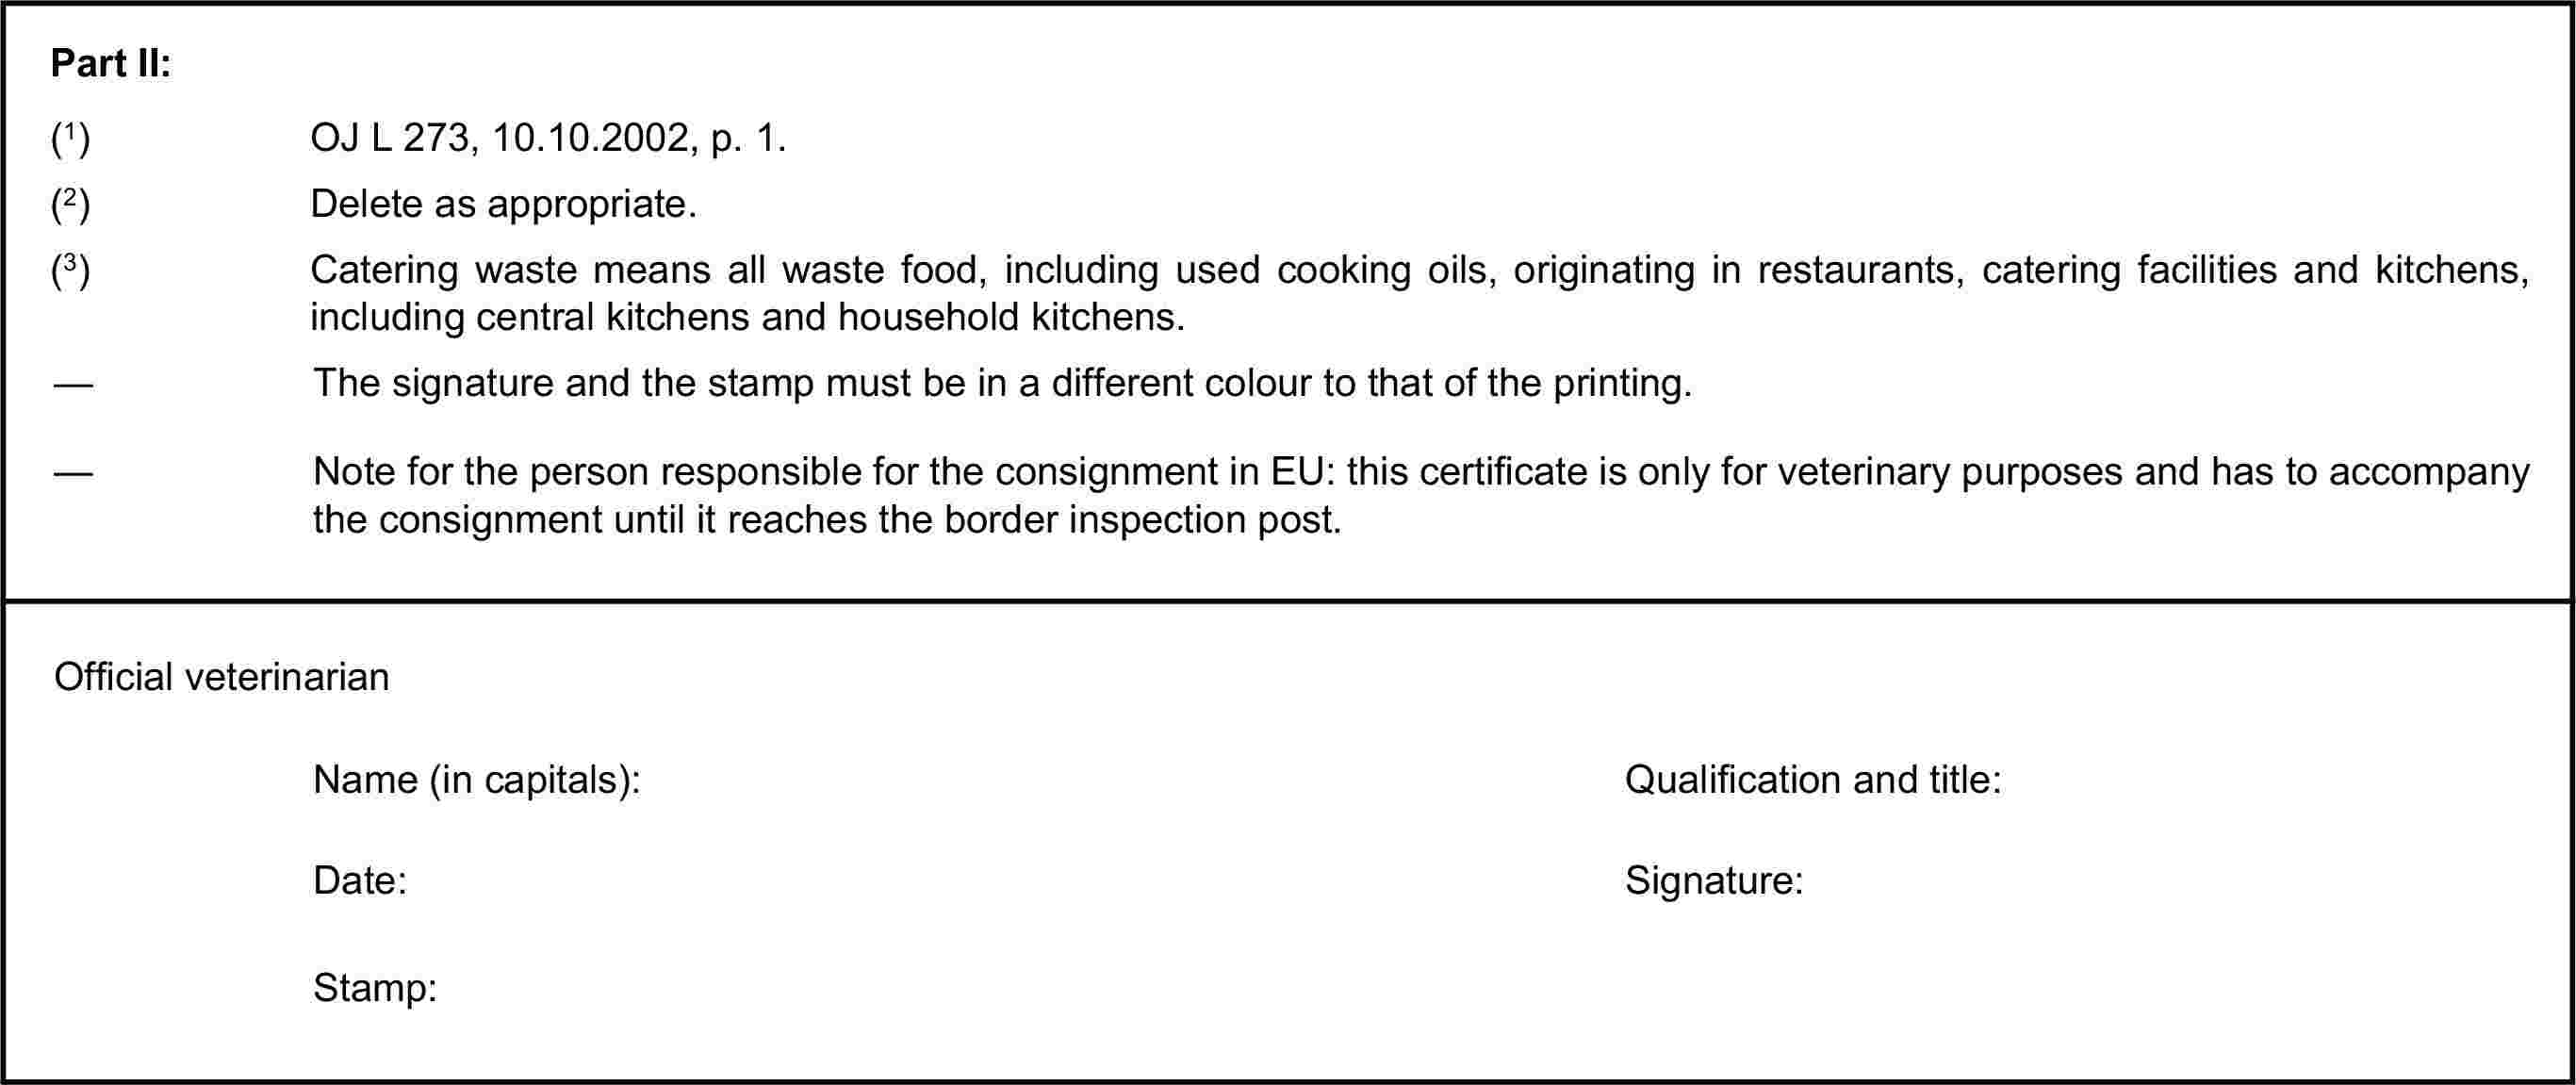 Part II:(1) OJ L 273, 10.10.2002, p. 1.(2) Delete as appropriate.(3) Catering waste means all waste food, including used cooking oils, originating in restaurants, catering facilities and kitchens, including central kitchens and household kitchens.— The signature and the stamp must be in a different colour to that of the printing.— Note for the person responsible for the consignment in EU: this certificate is only for veterinary purposes and has to accompany the consignment until it reaches the border inspection post.Official veterinarianName (in capitals):Qualification and title:Date:Signature:Stamp: